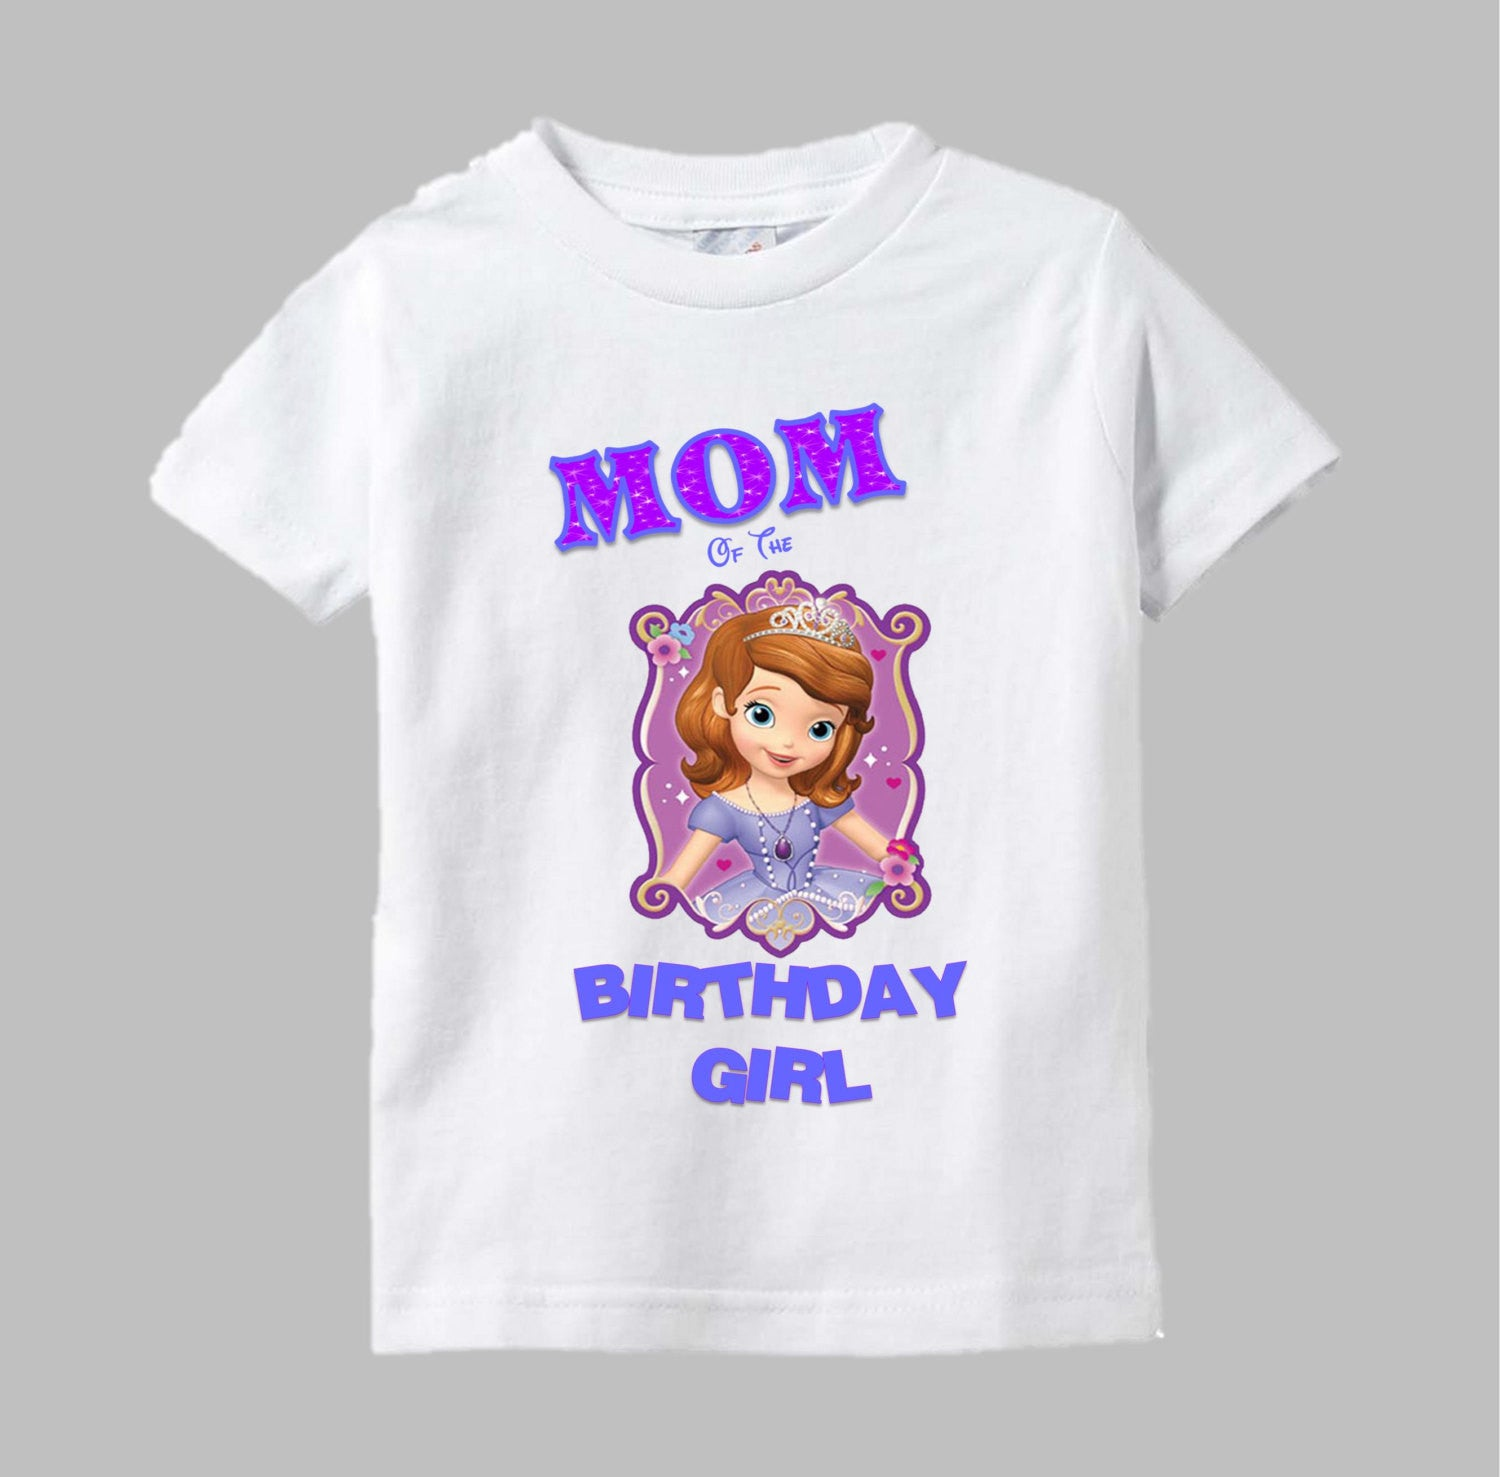 Sofia The First Mom Shirt